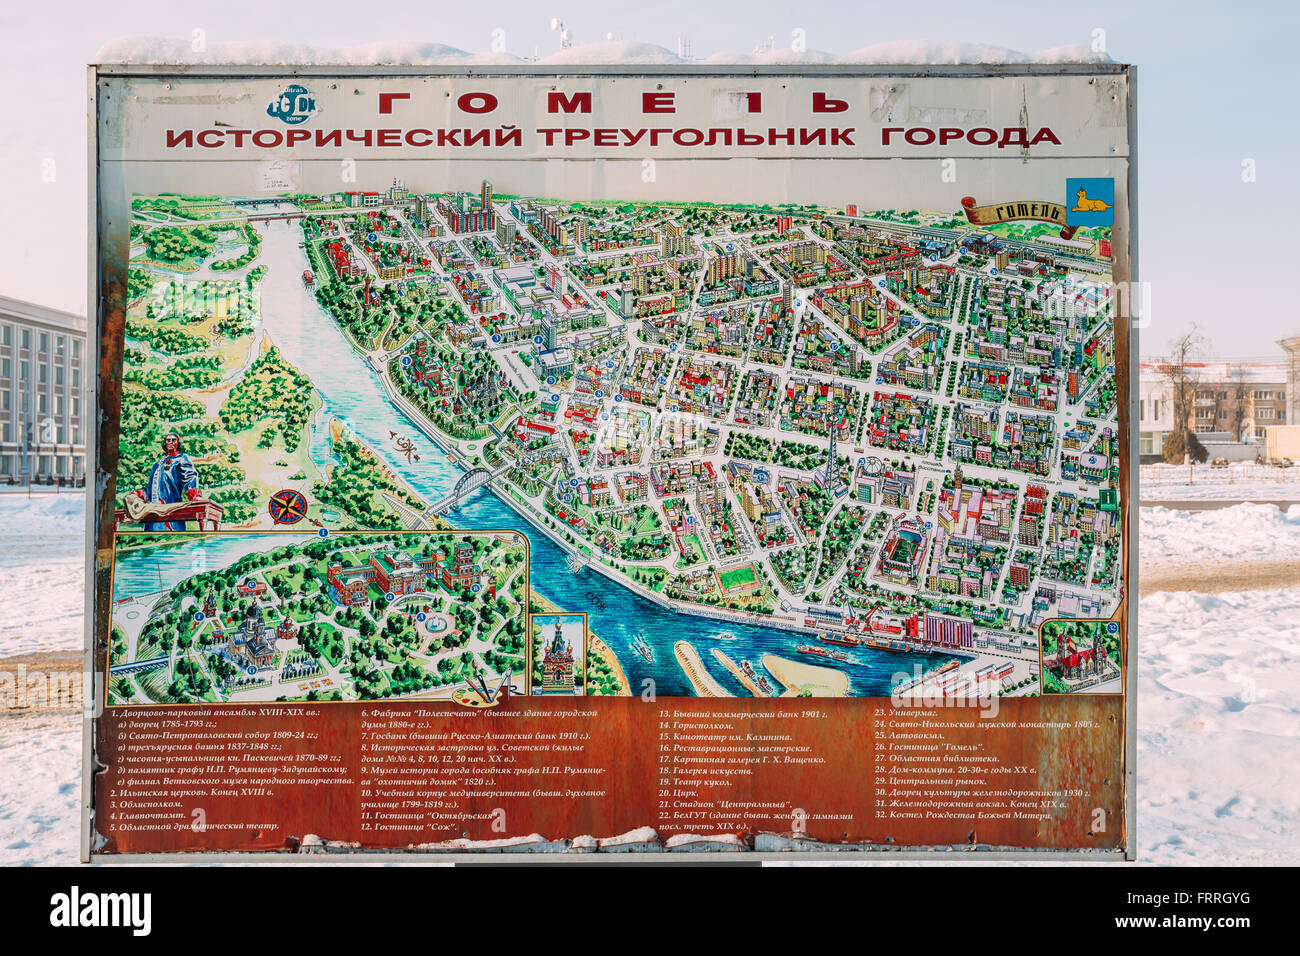 Gomel, Belarus - January 23, 2016: Route tourist map with the designated main attractions of the city of Gomel - Stock Image